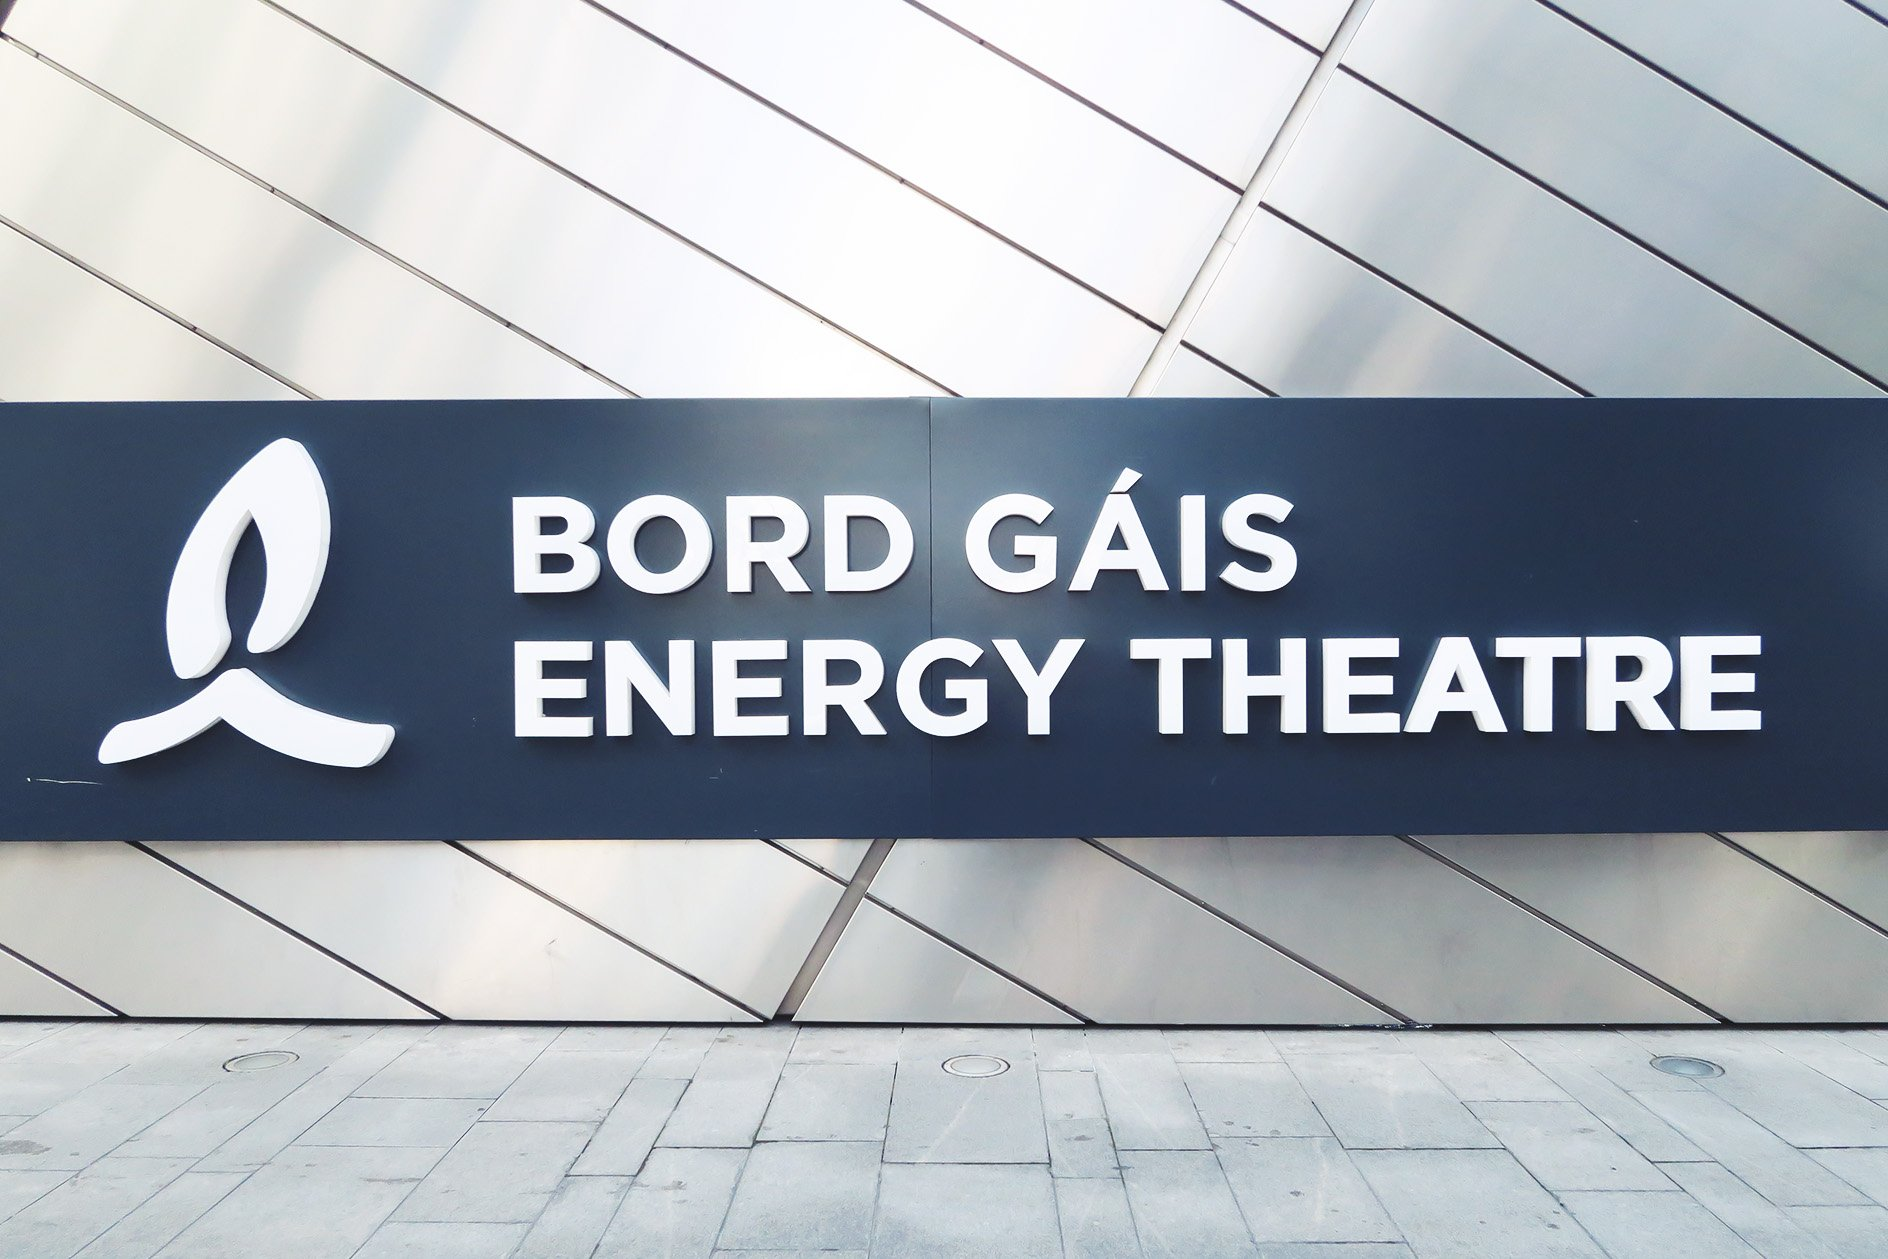 Bord Gais Energy Theatre Sign